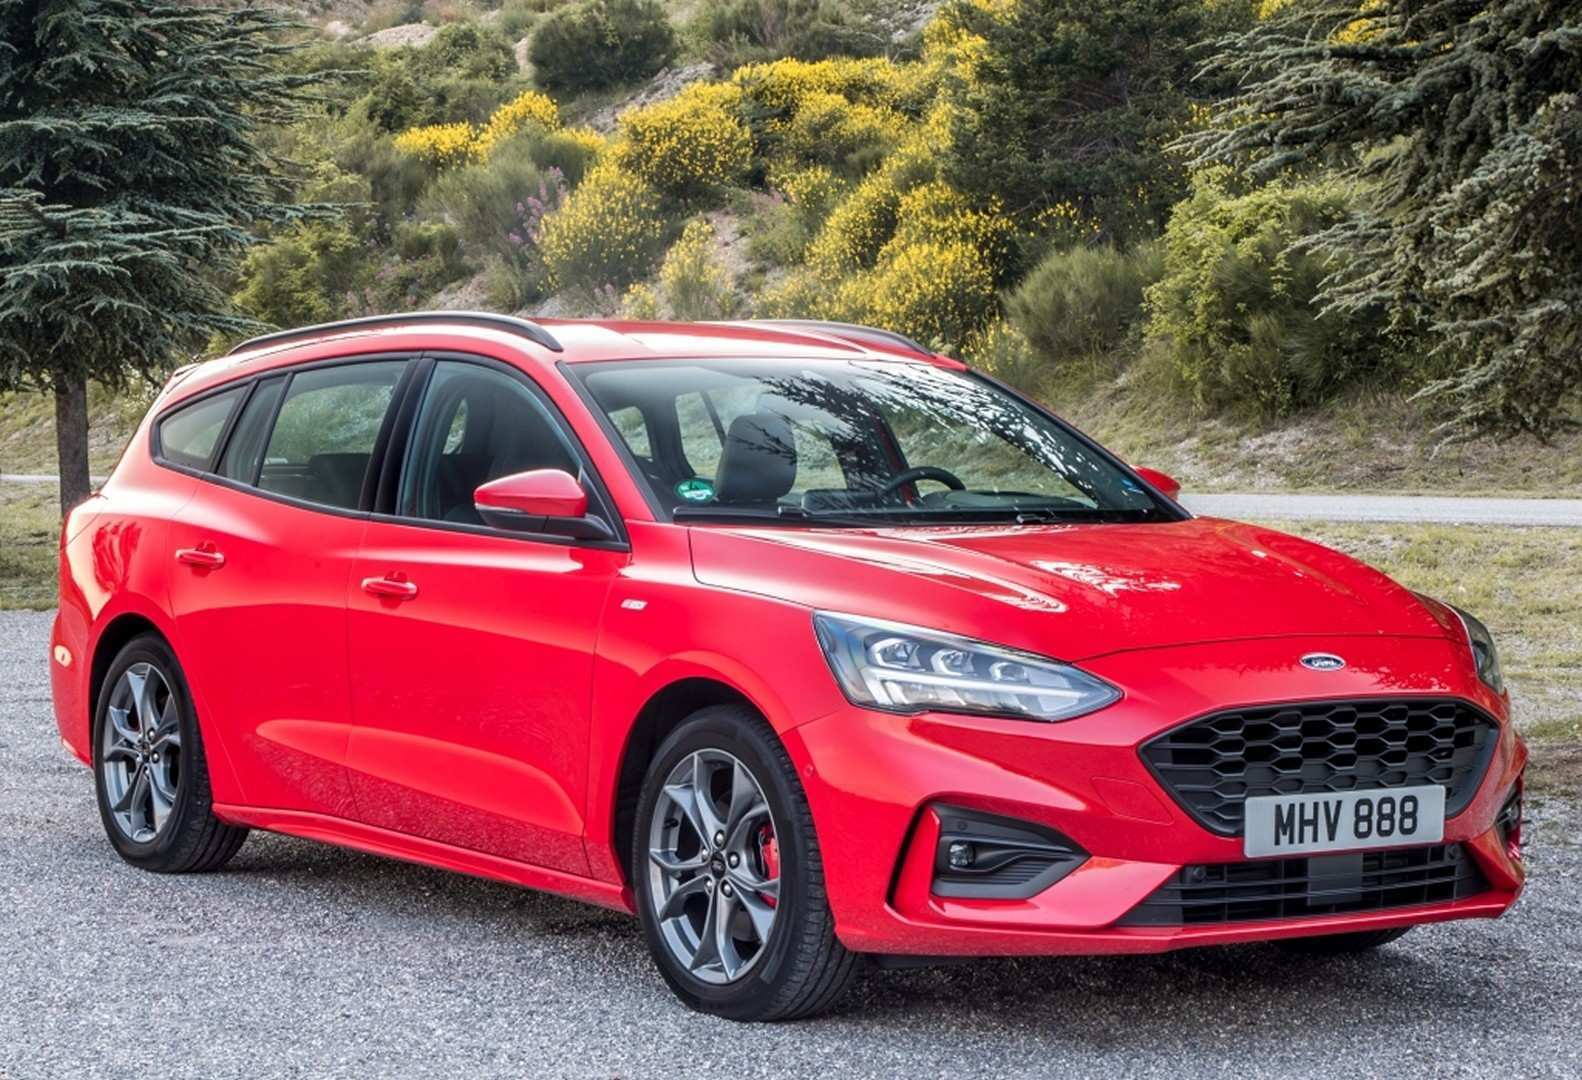 16 Great 2019 Ford Focus St Line Configurations for 2019 Ford Focus St Line